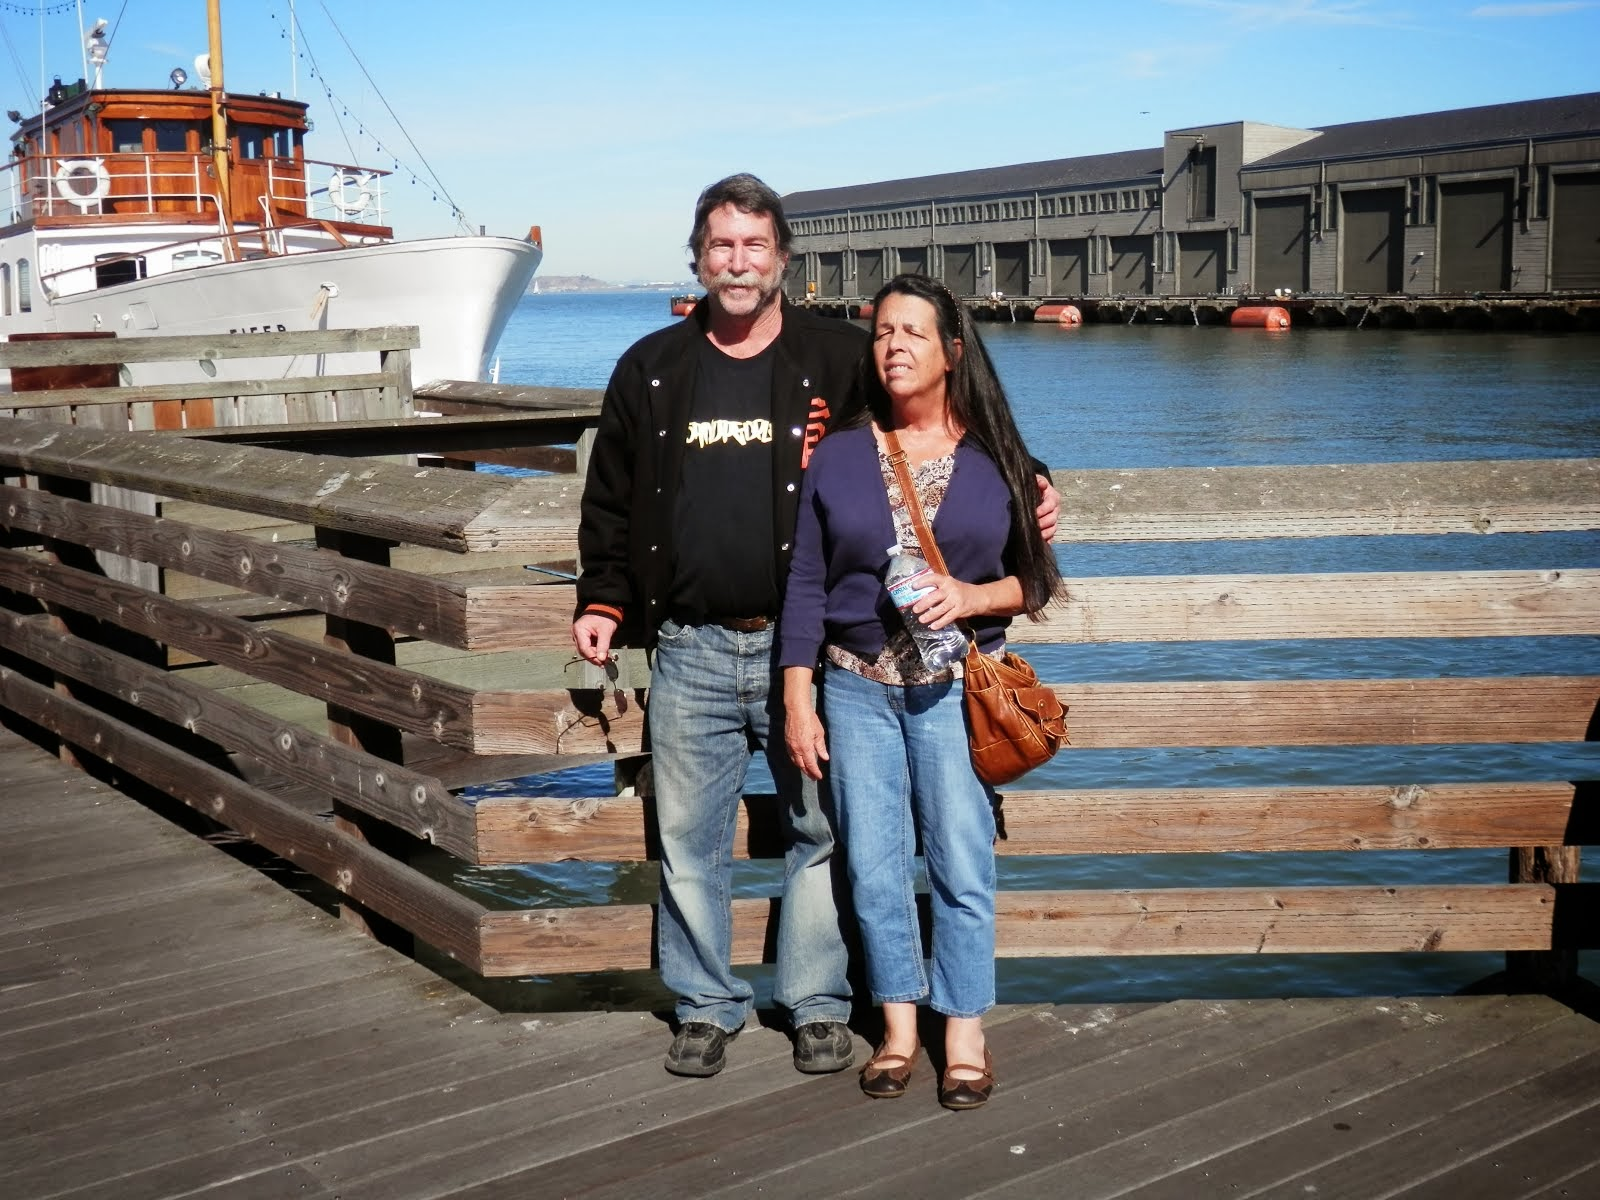 At the wharf in San Francisco